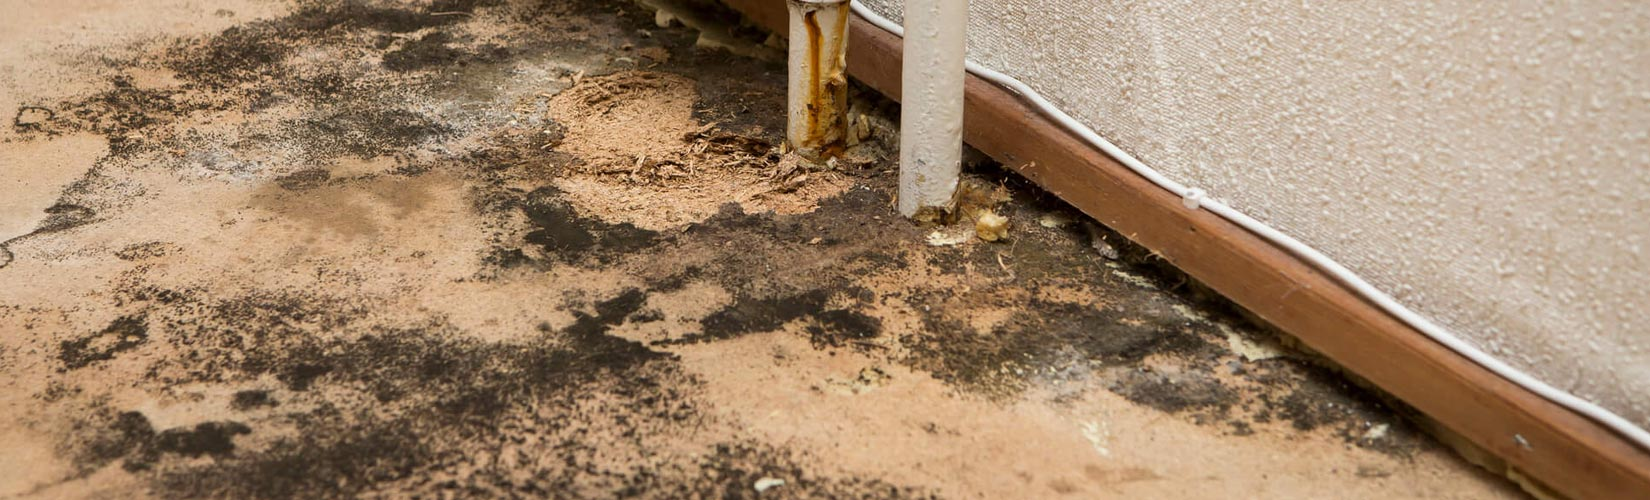 Mold Remediation Service in Durango, Farmington, Cortez, and Pagosa Springs